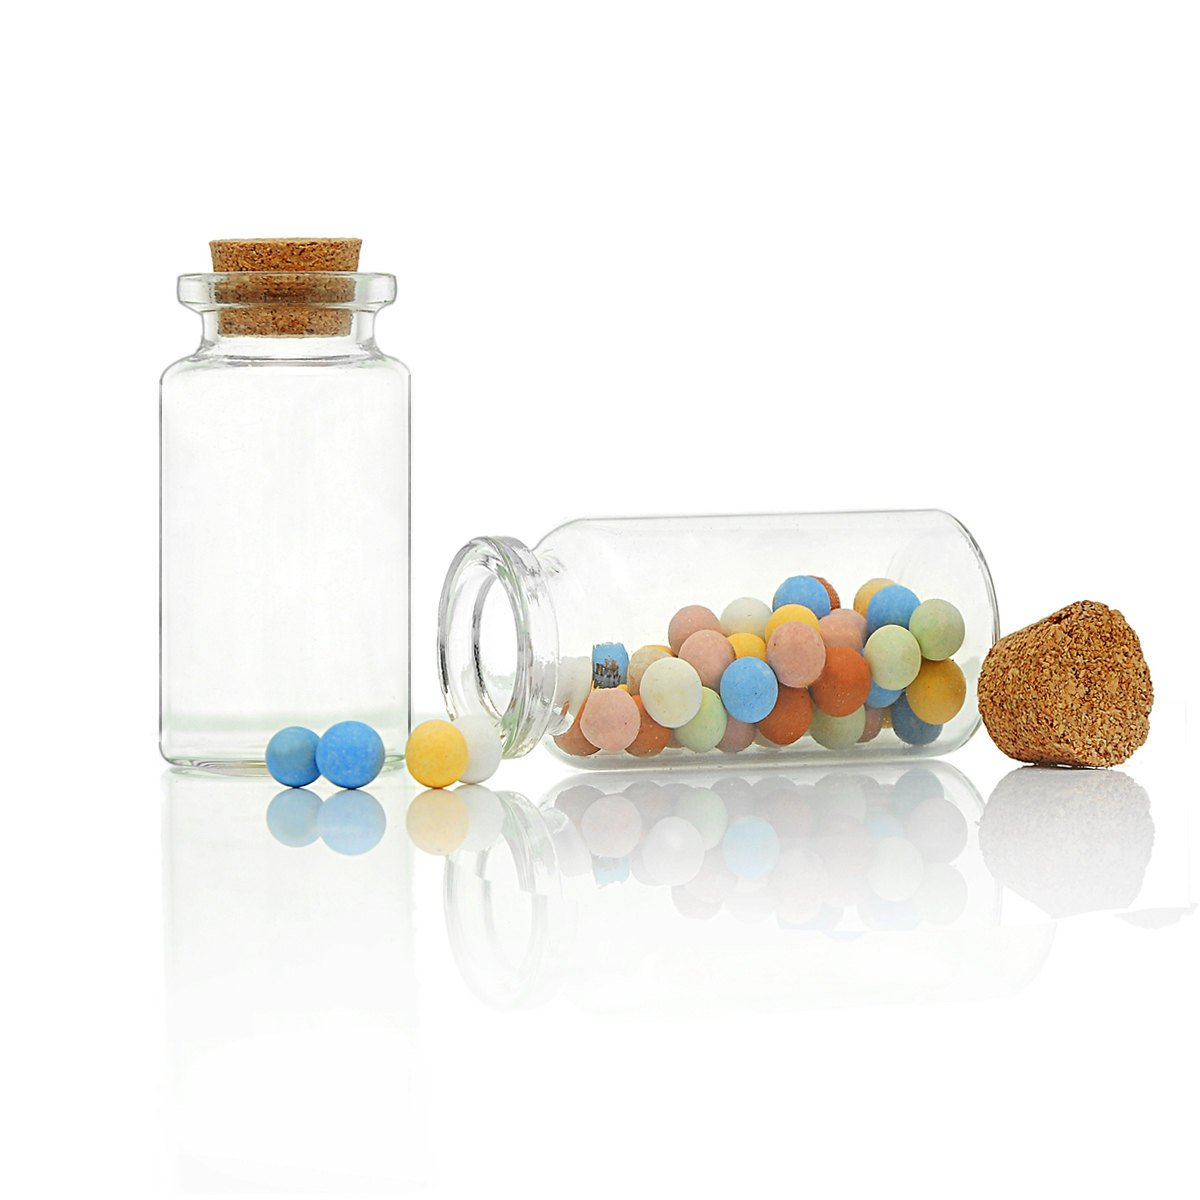 T023 5 Pcs Glass Tube Jewelry Bead Storage Vials Potion Cylinder Bottles With Corks 45mm X 22mm 38 5mm Depth Per Vial Favored Memories Jewelry Making Supply Store